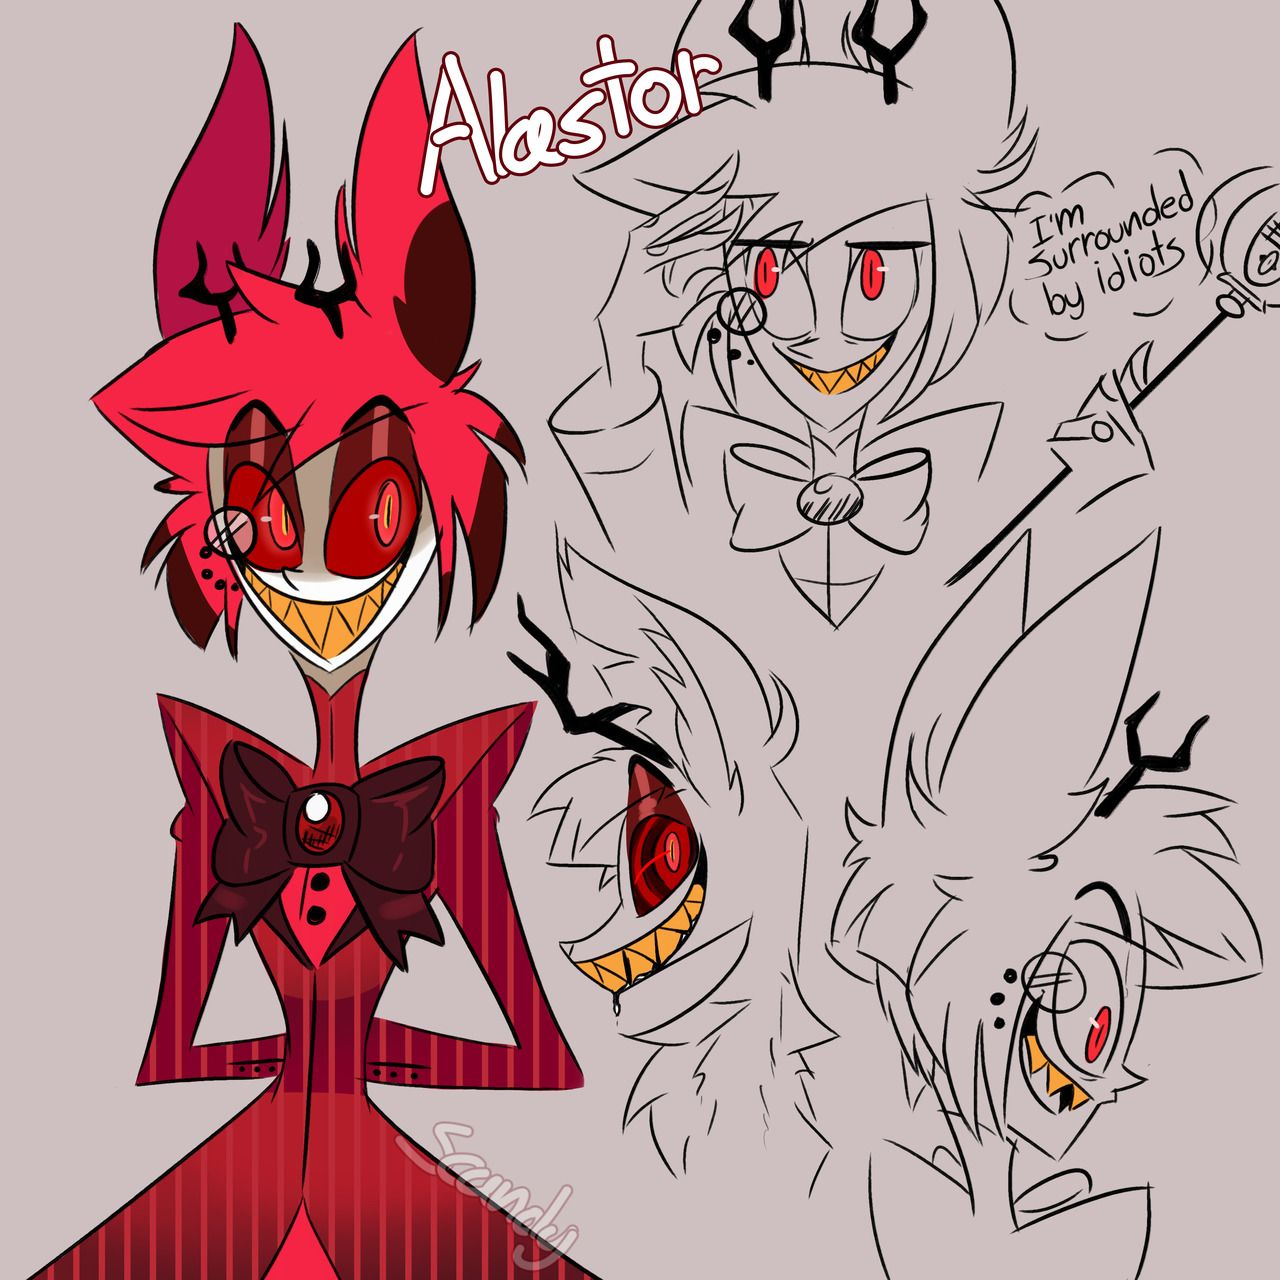 Hazbin Hotel #Cartoon #Movie #Vivziepop #Animation Alastor